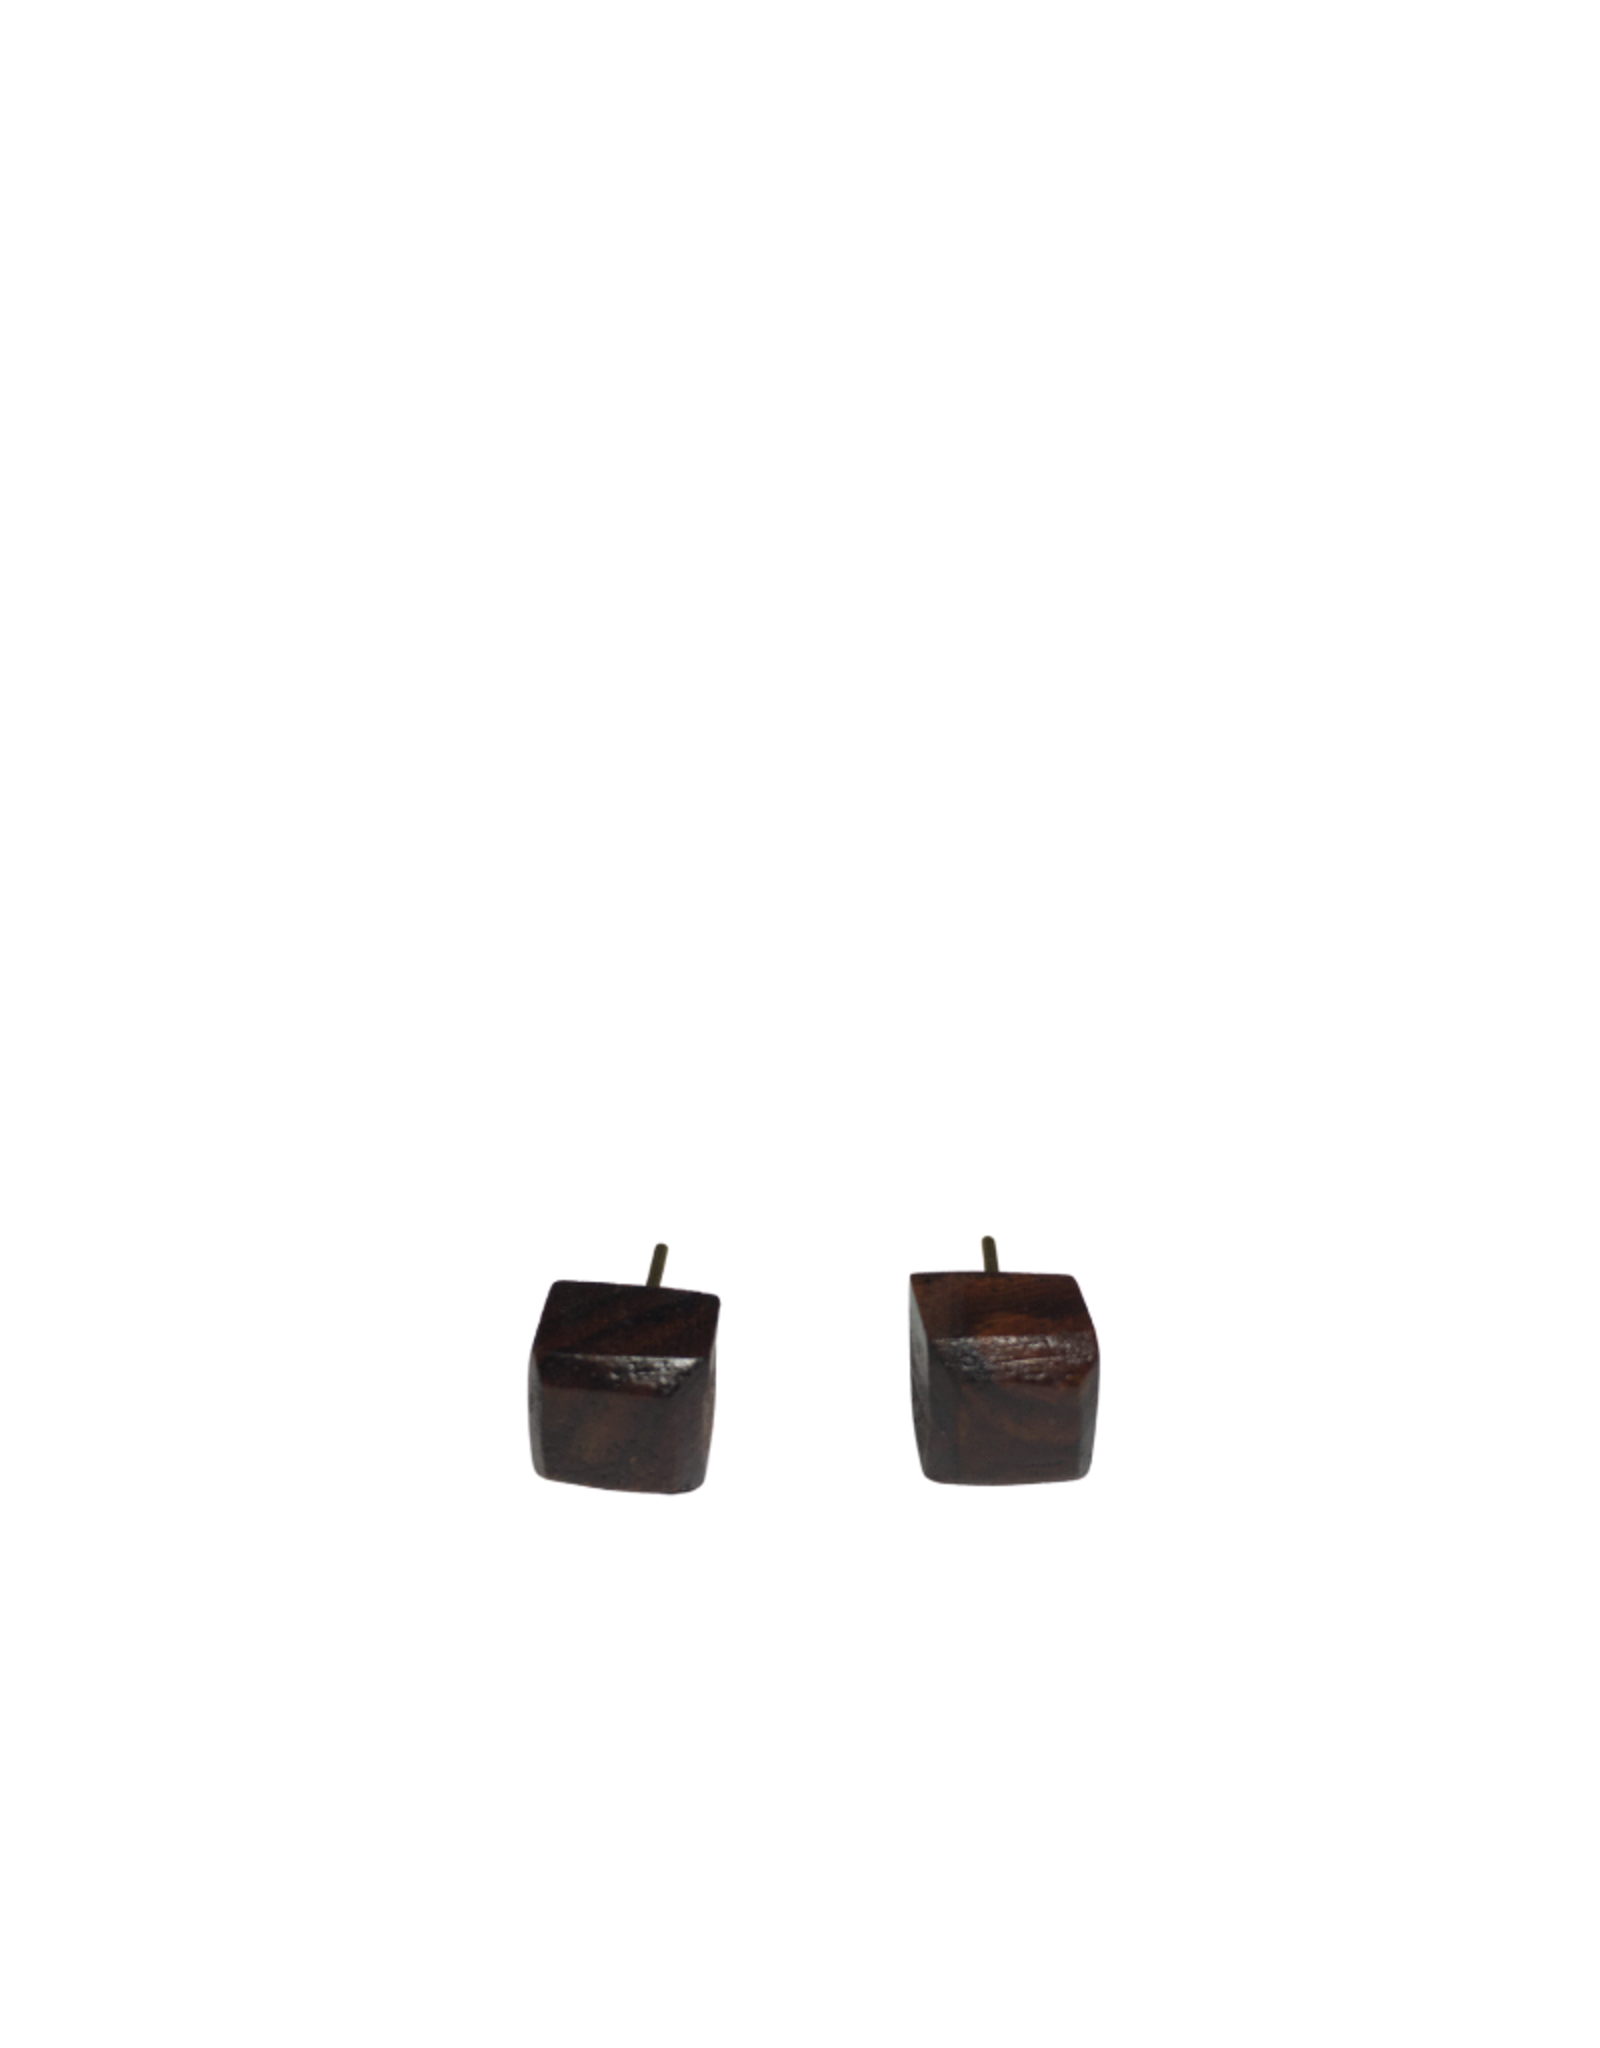 Ten Thousand Villages Rosewood Stud Earrings